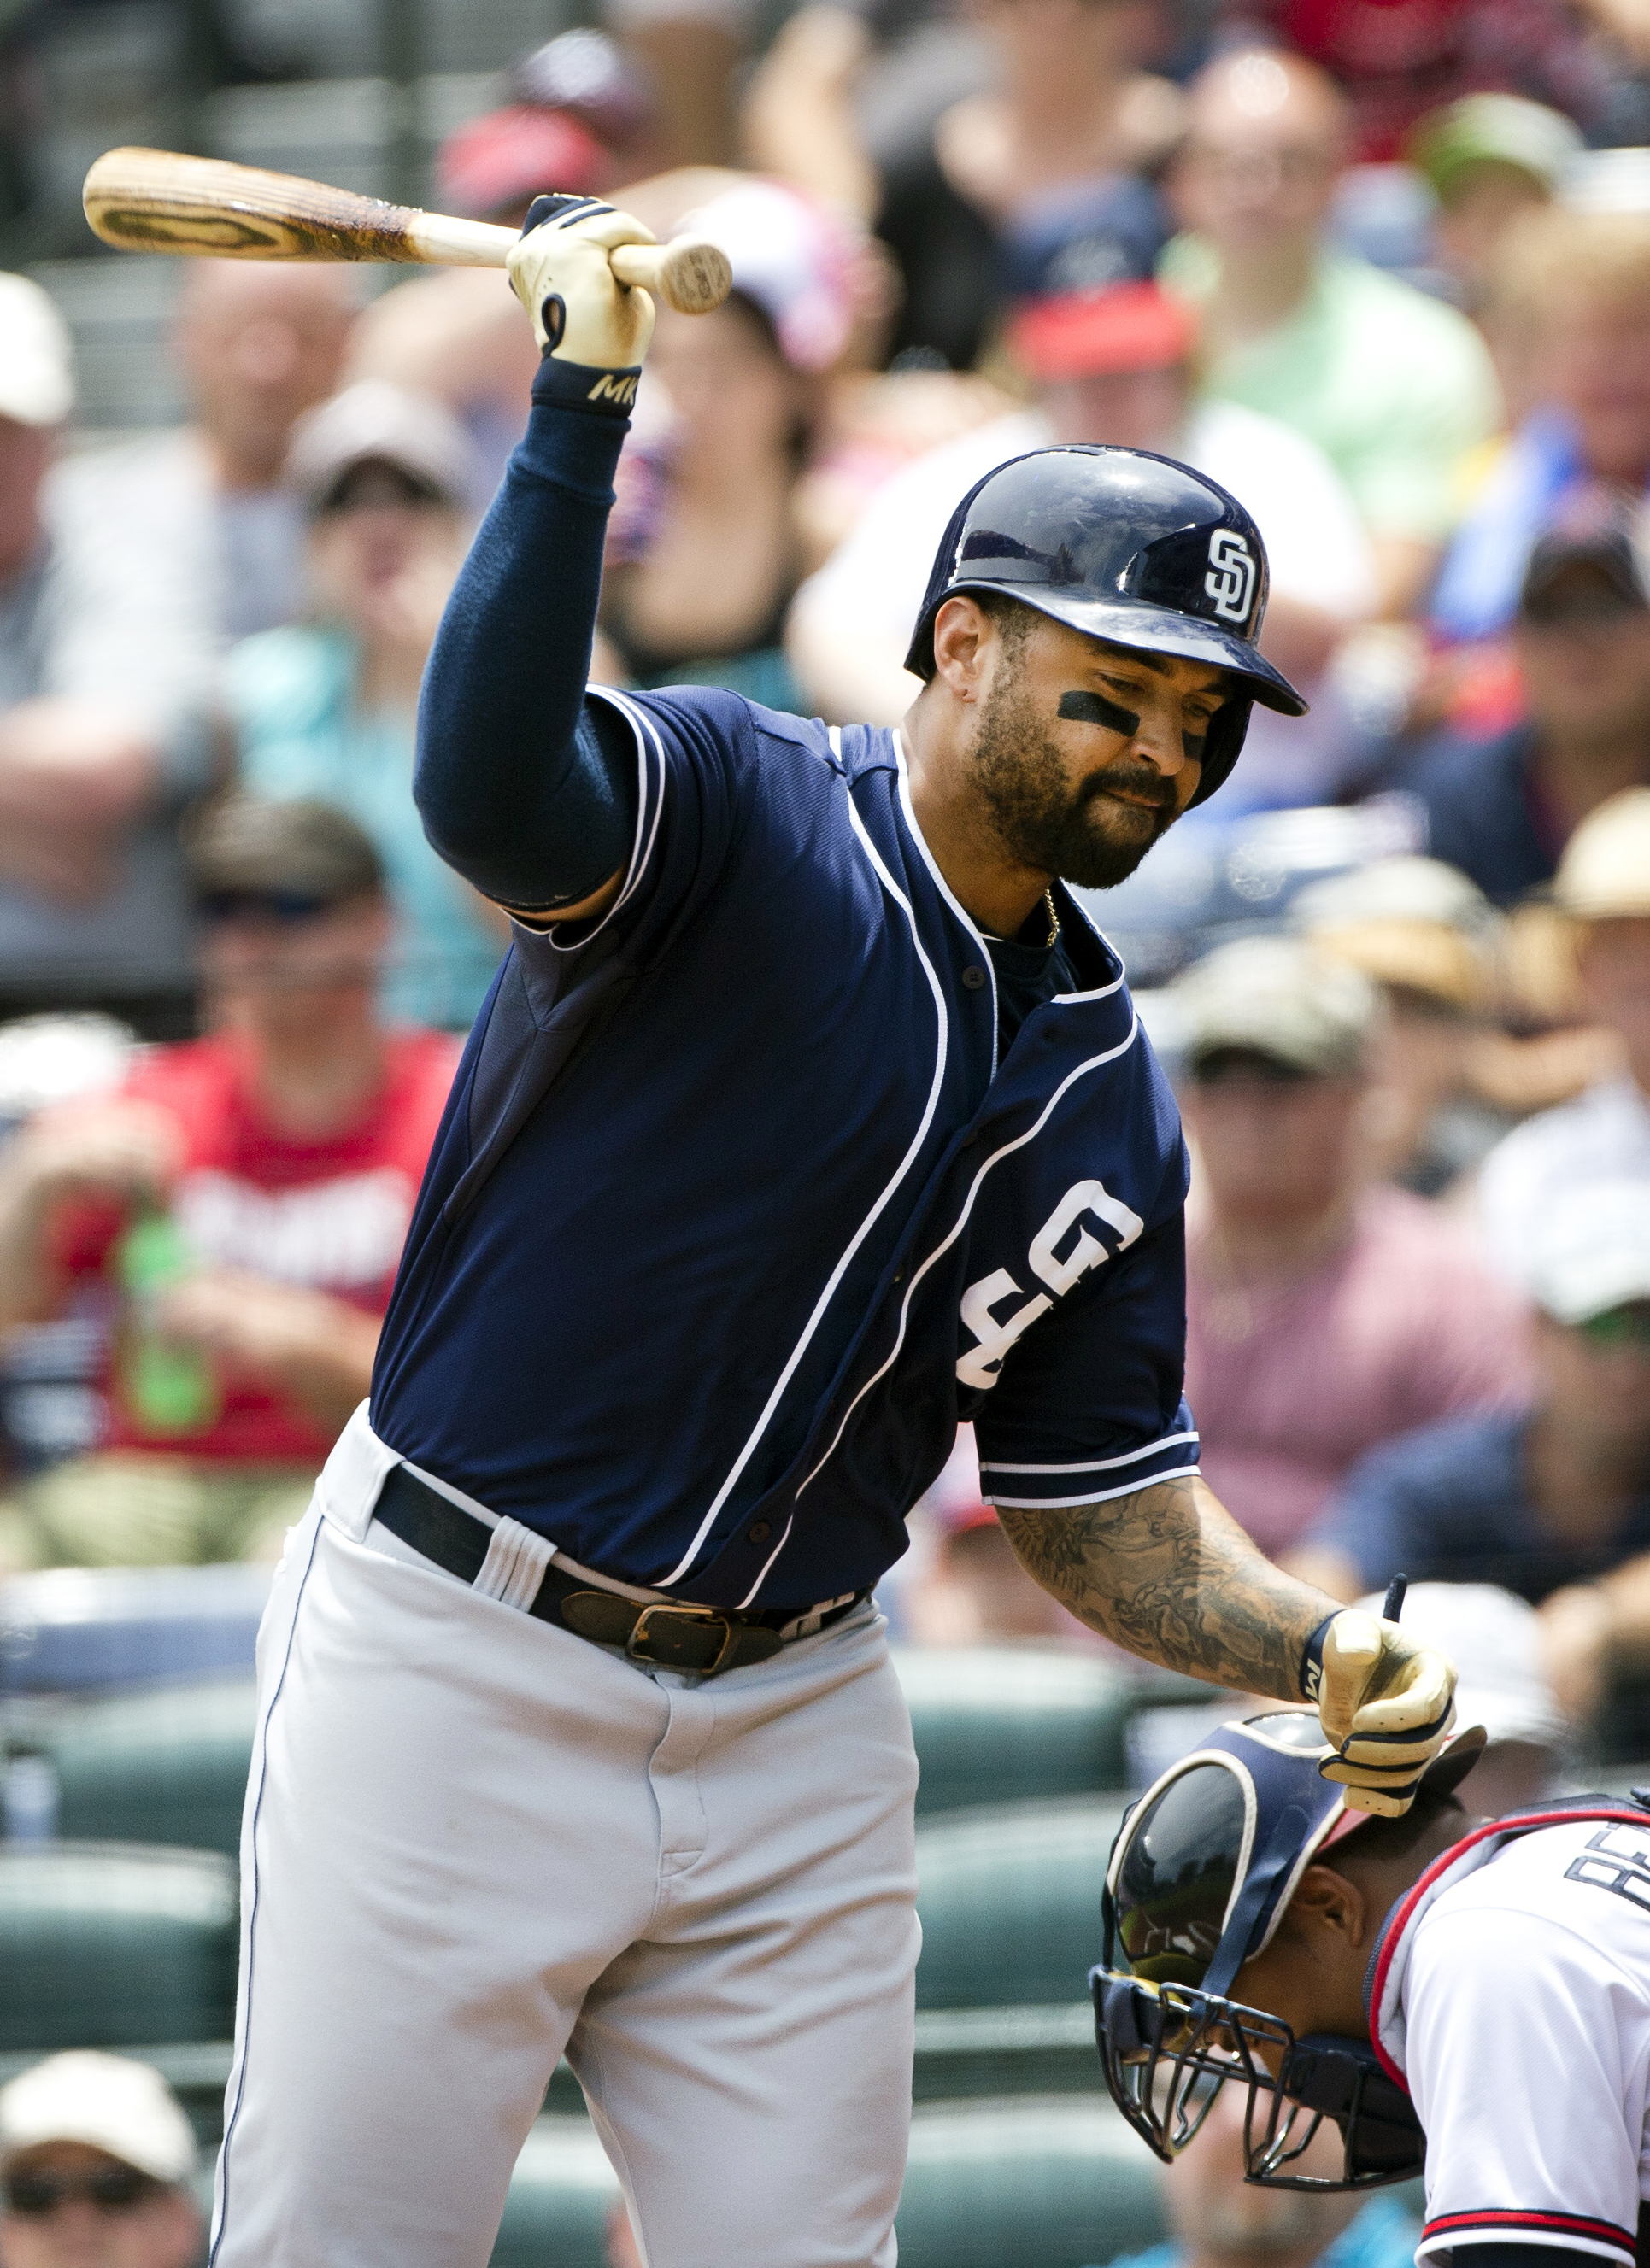 San Diego Padres' Matt Kemp reacts after he was hit by a pitch from Atlanta Braves starter Juio Teheran in the first inning of a baseball game Thursday, June 11, 2015, in Atlanta. The incident led to both dugouts emptying onto the field. (AP Photo/John Ba